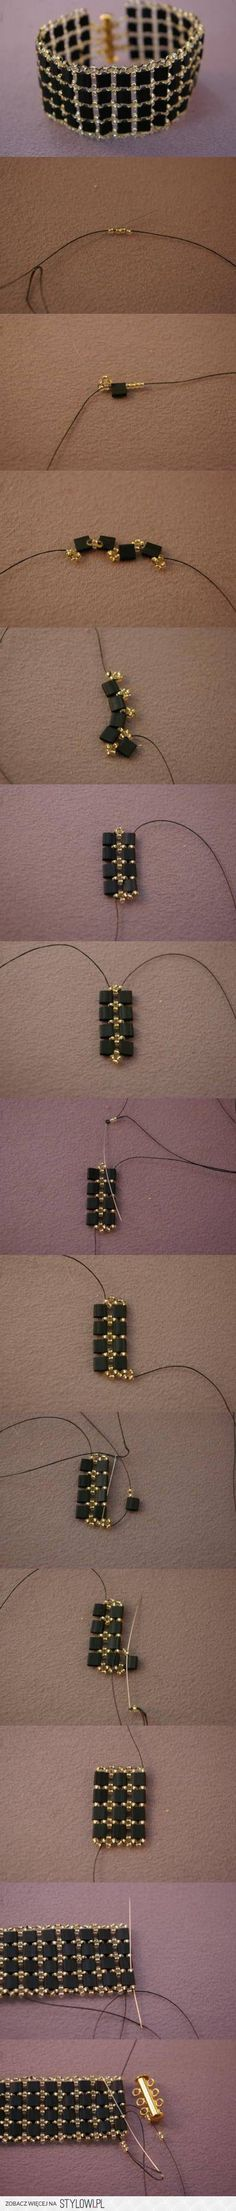 DIY Beadwork Bracelet DIY Projects | UsefulDIY.com na Stylowi.pl